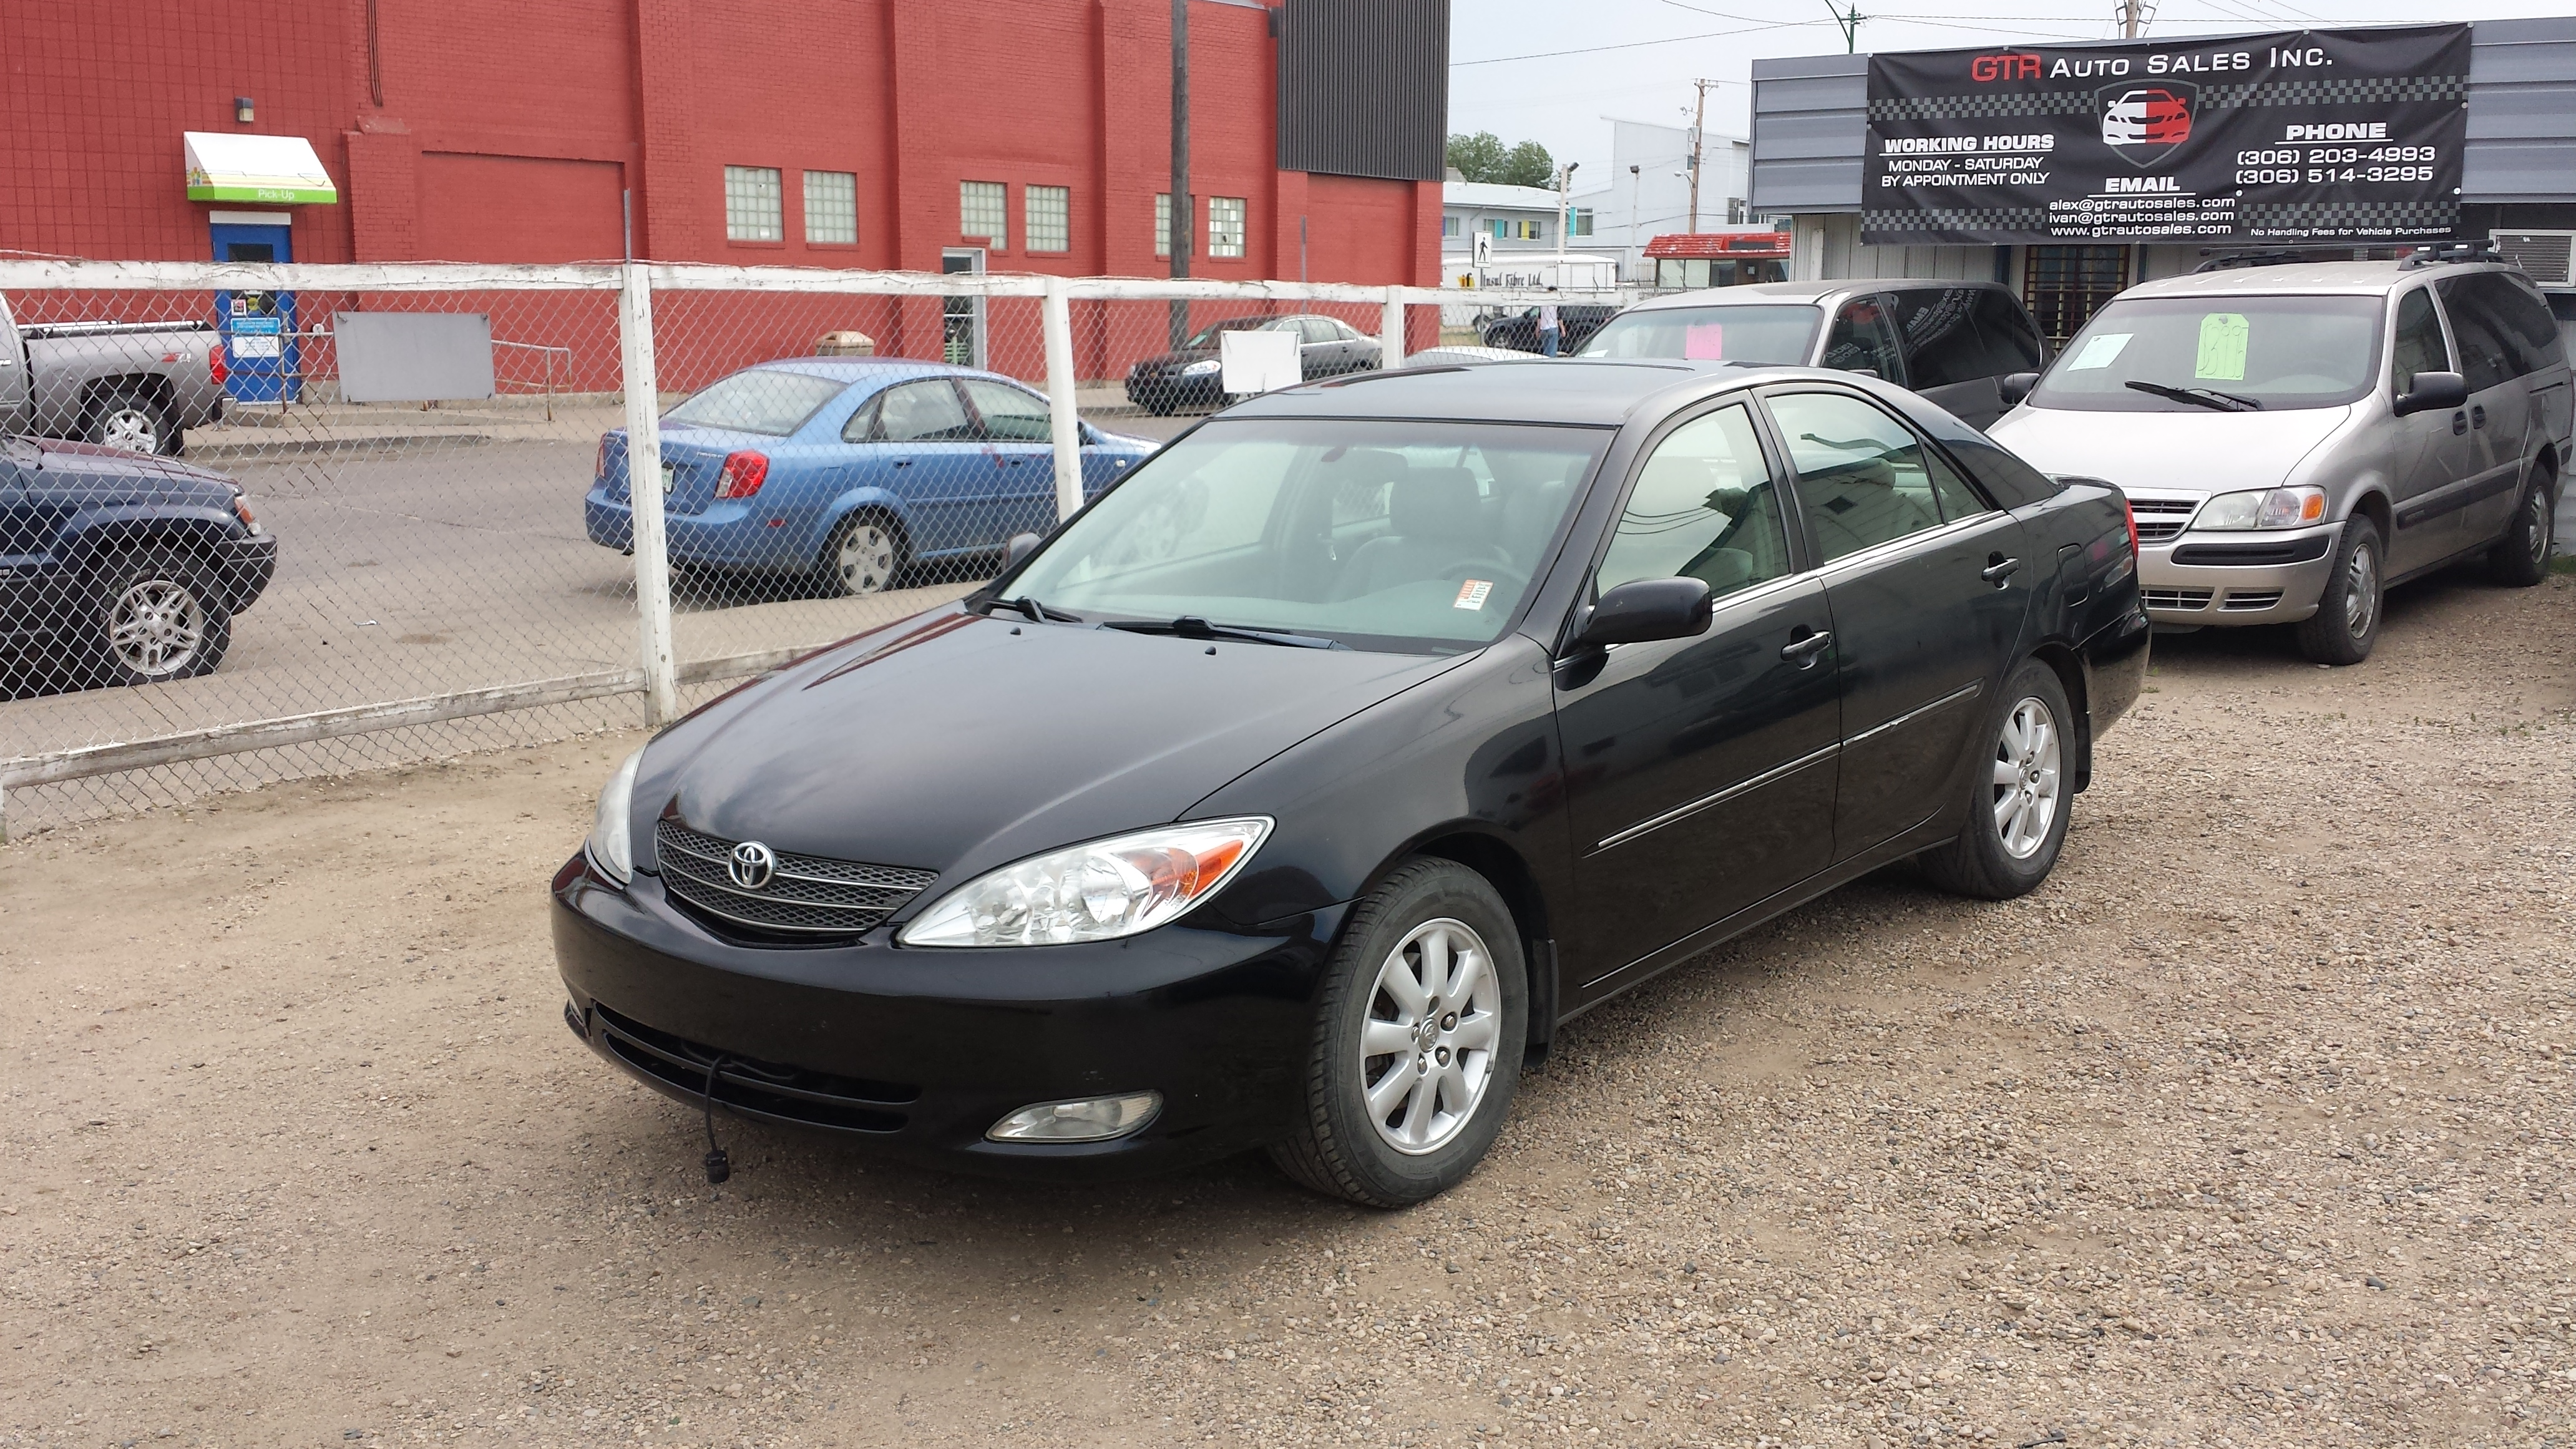 xle toyota listings spot fwd rear full dem camry